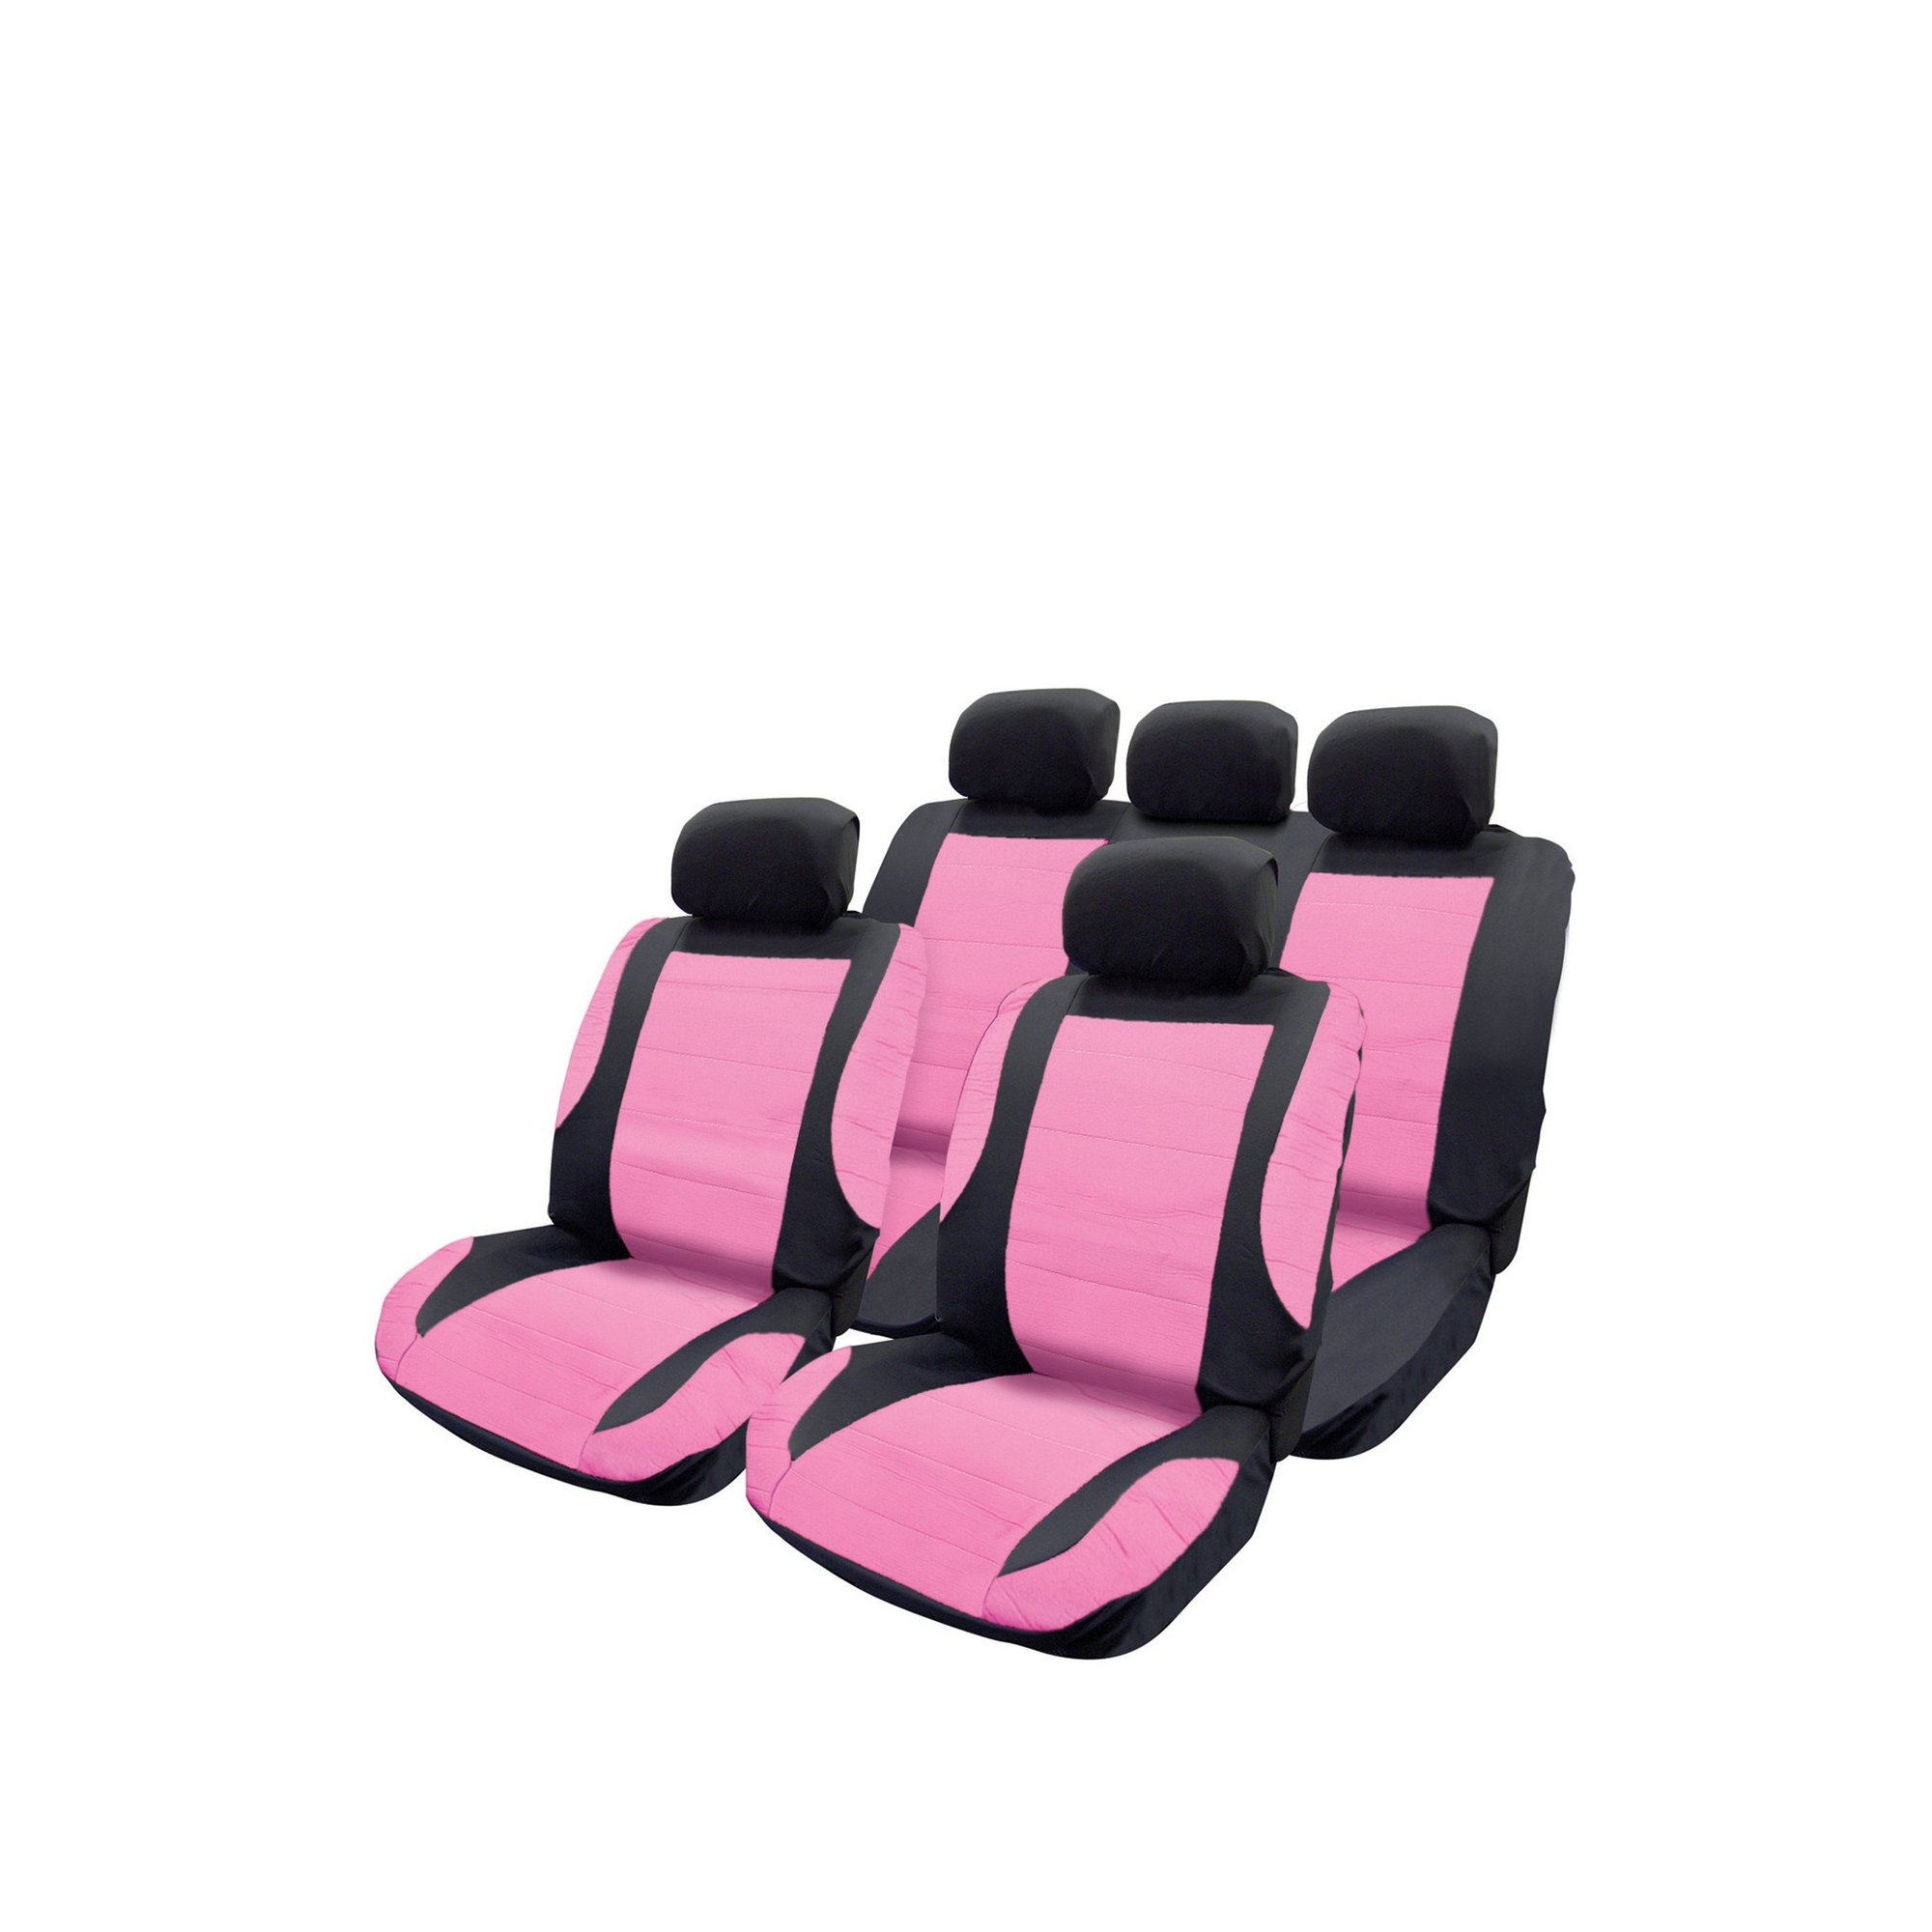 Image of Pink Leather Look Seat Cover Set